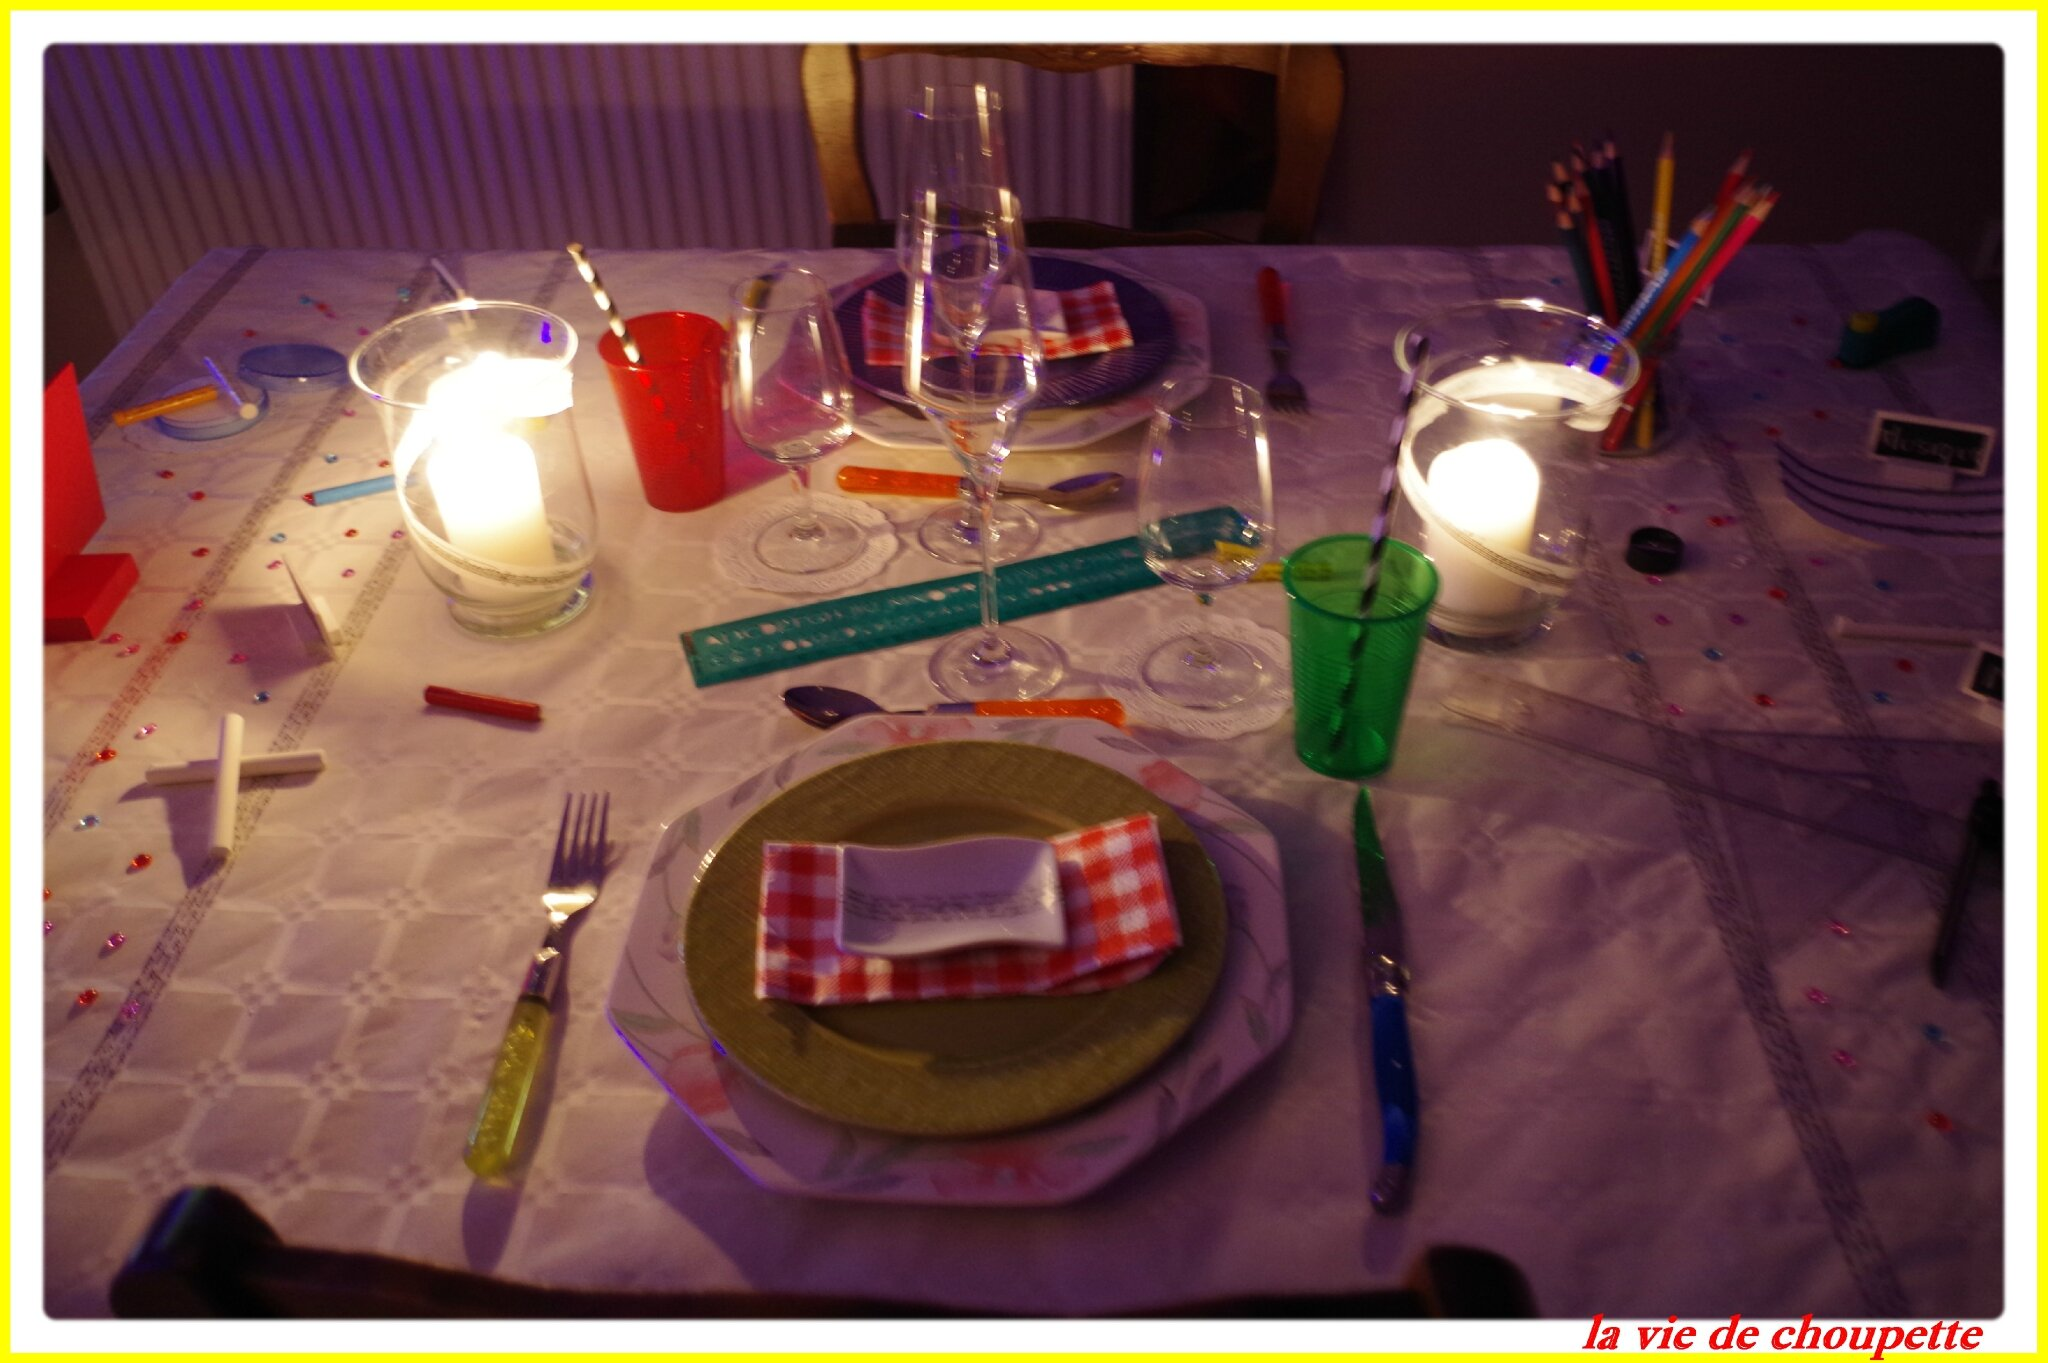 TABLE RENTREE SCOLAIRES 2013-2014